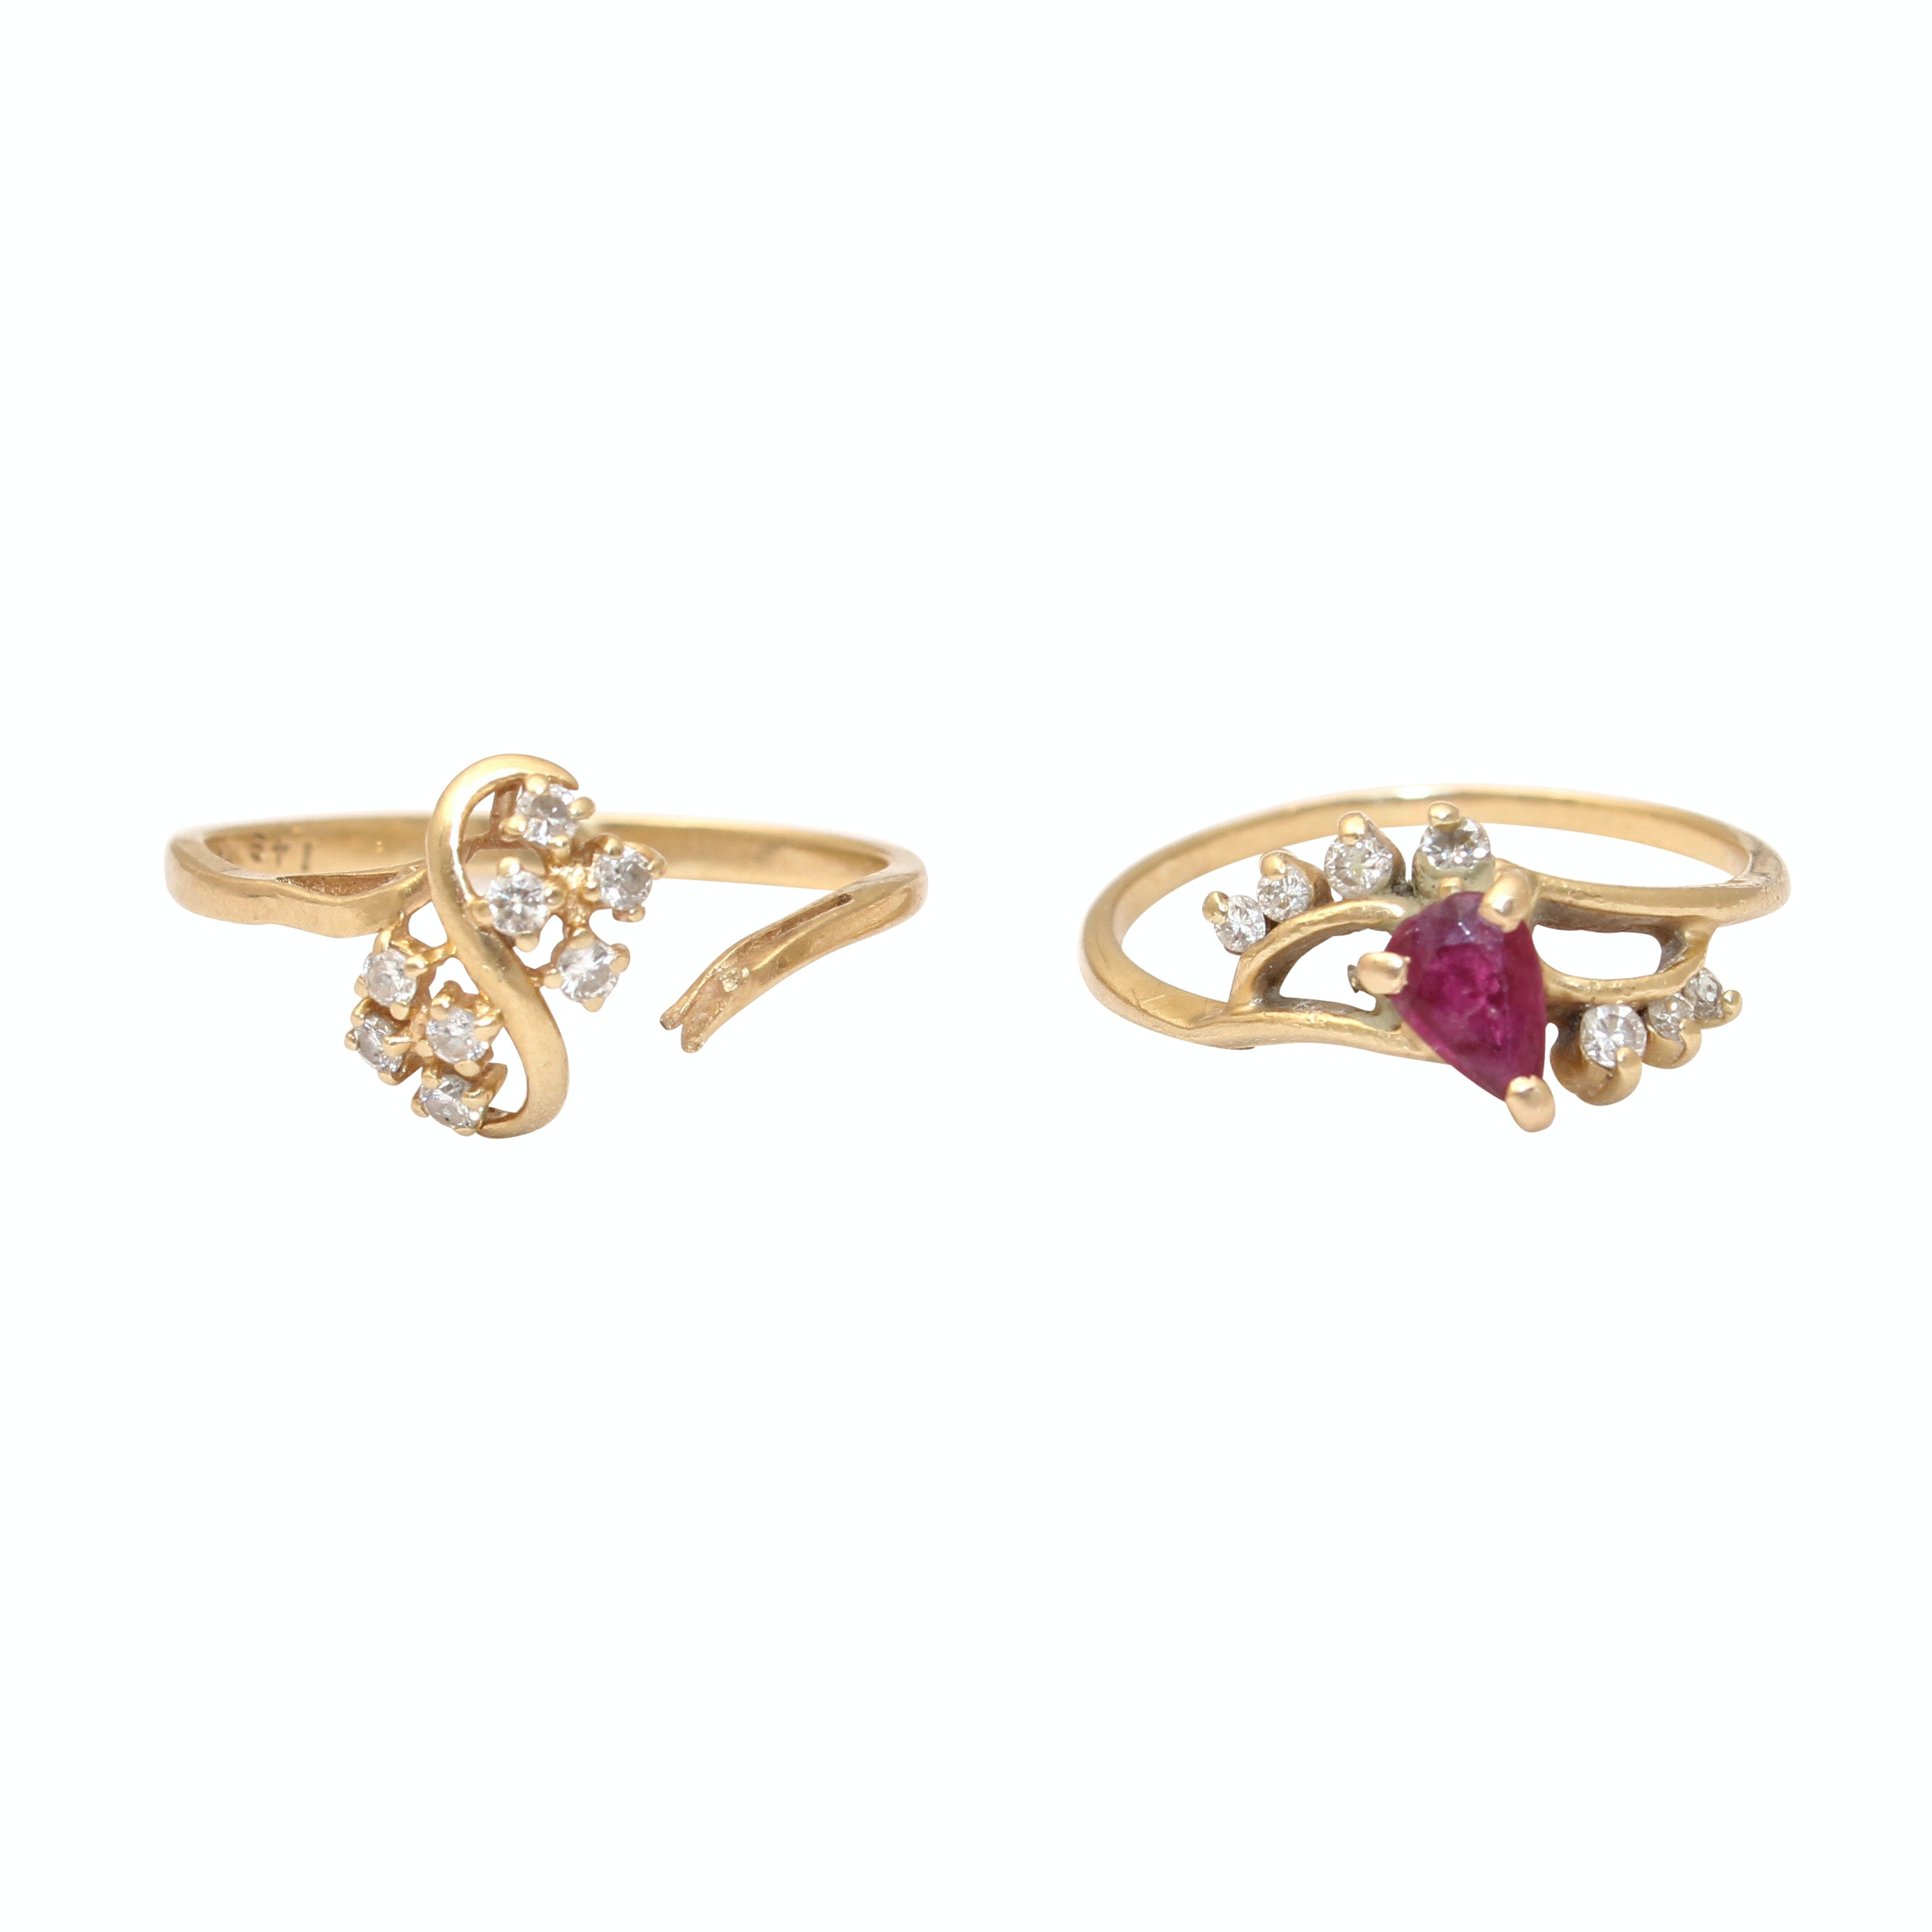 14K Yellow Gold Diamond and Ruby Rings